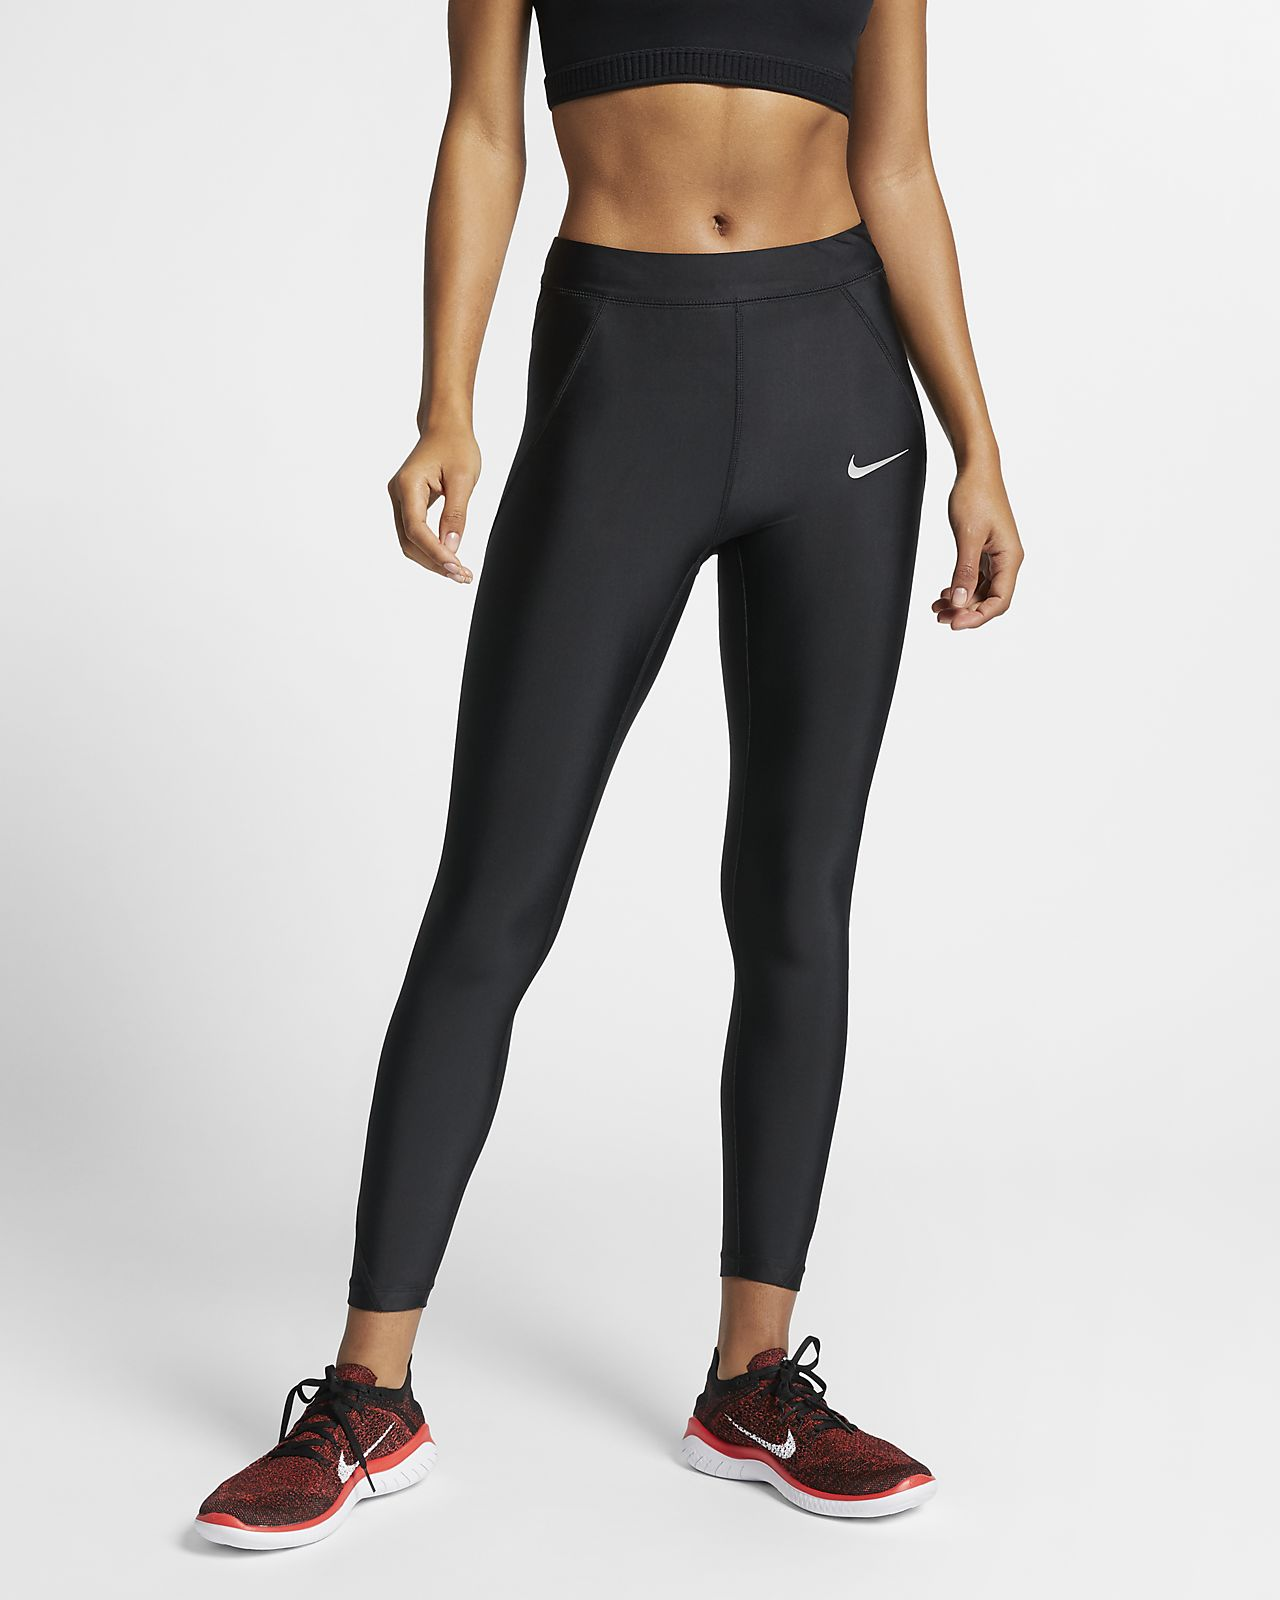 0e479067f Nike Speed Women s 7 8 Tights. Nike.com ZA